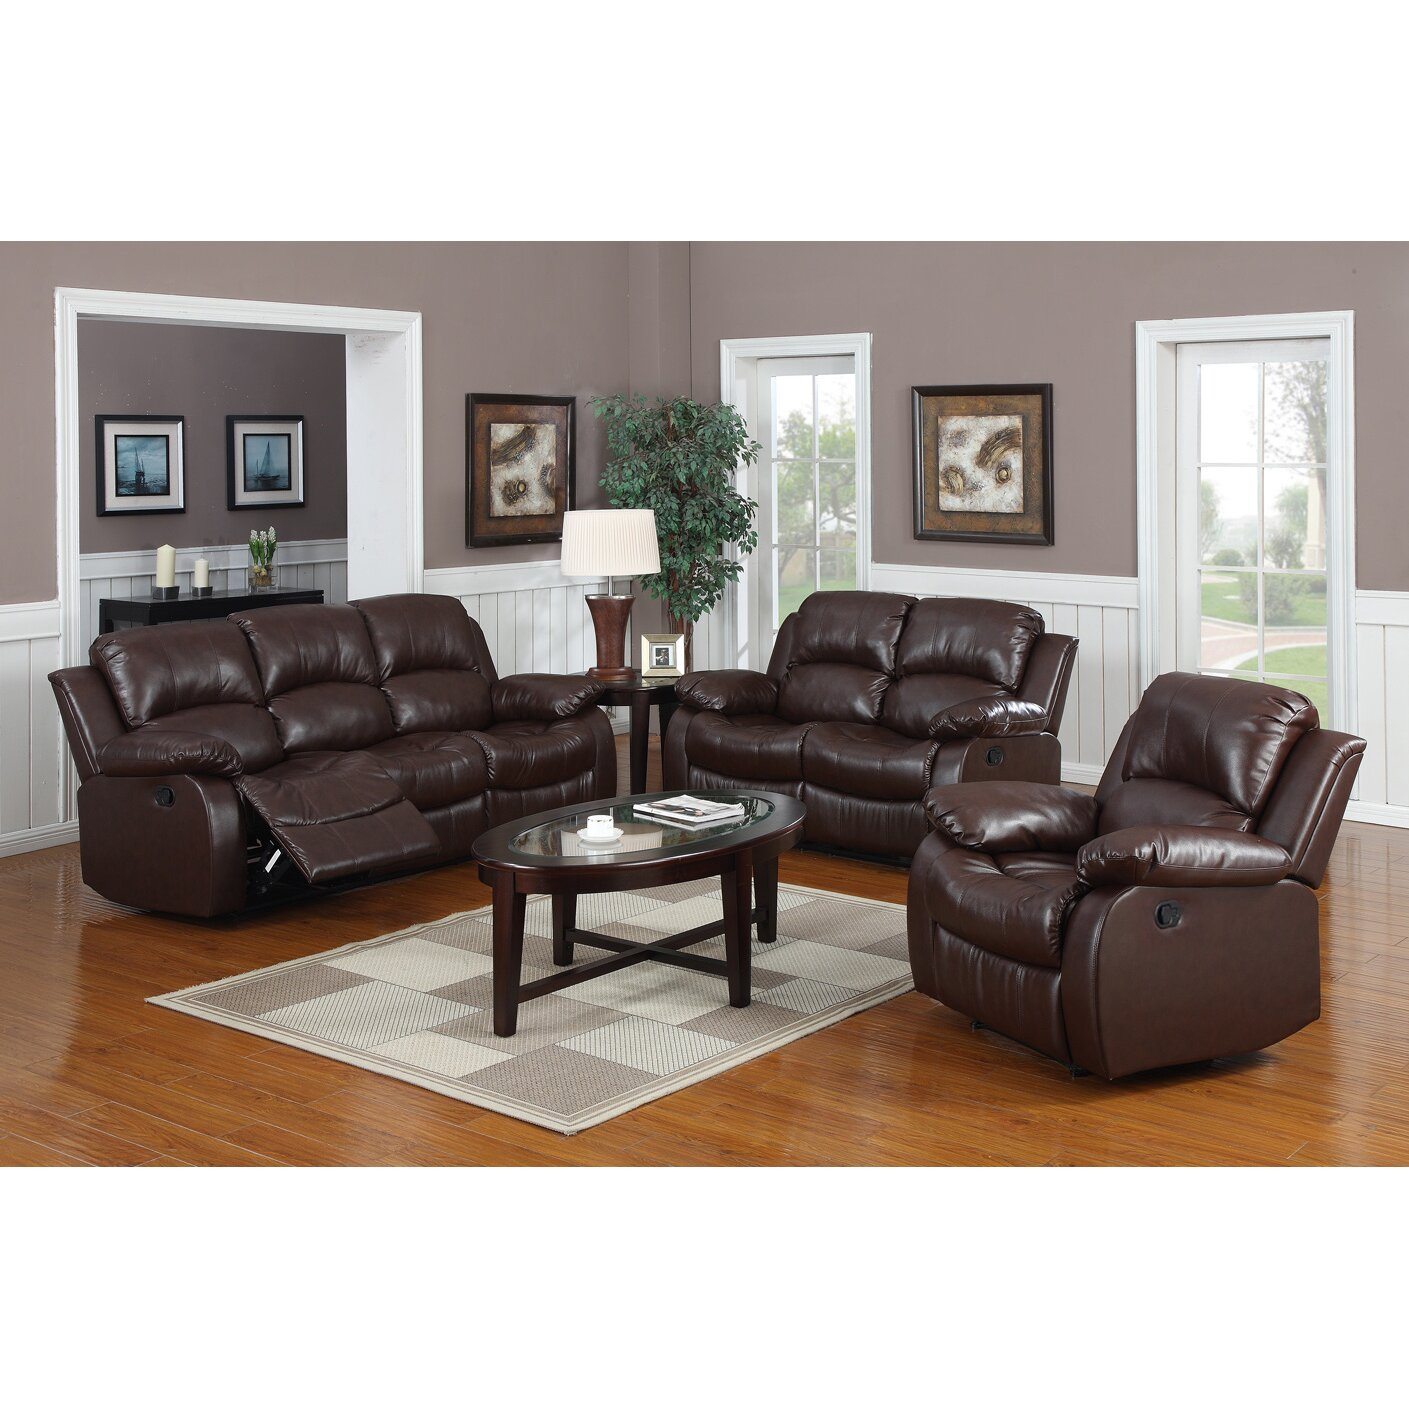 Bryce 3 Piece Reclining Living Room Set - Latitude Run Bryce 3 Piece Reclining Living Room Set & Reviews